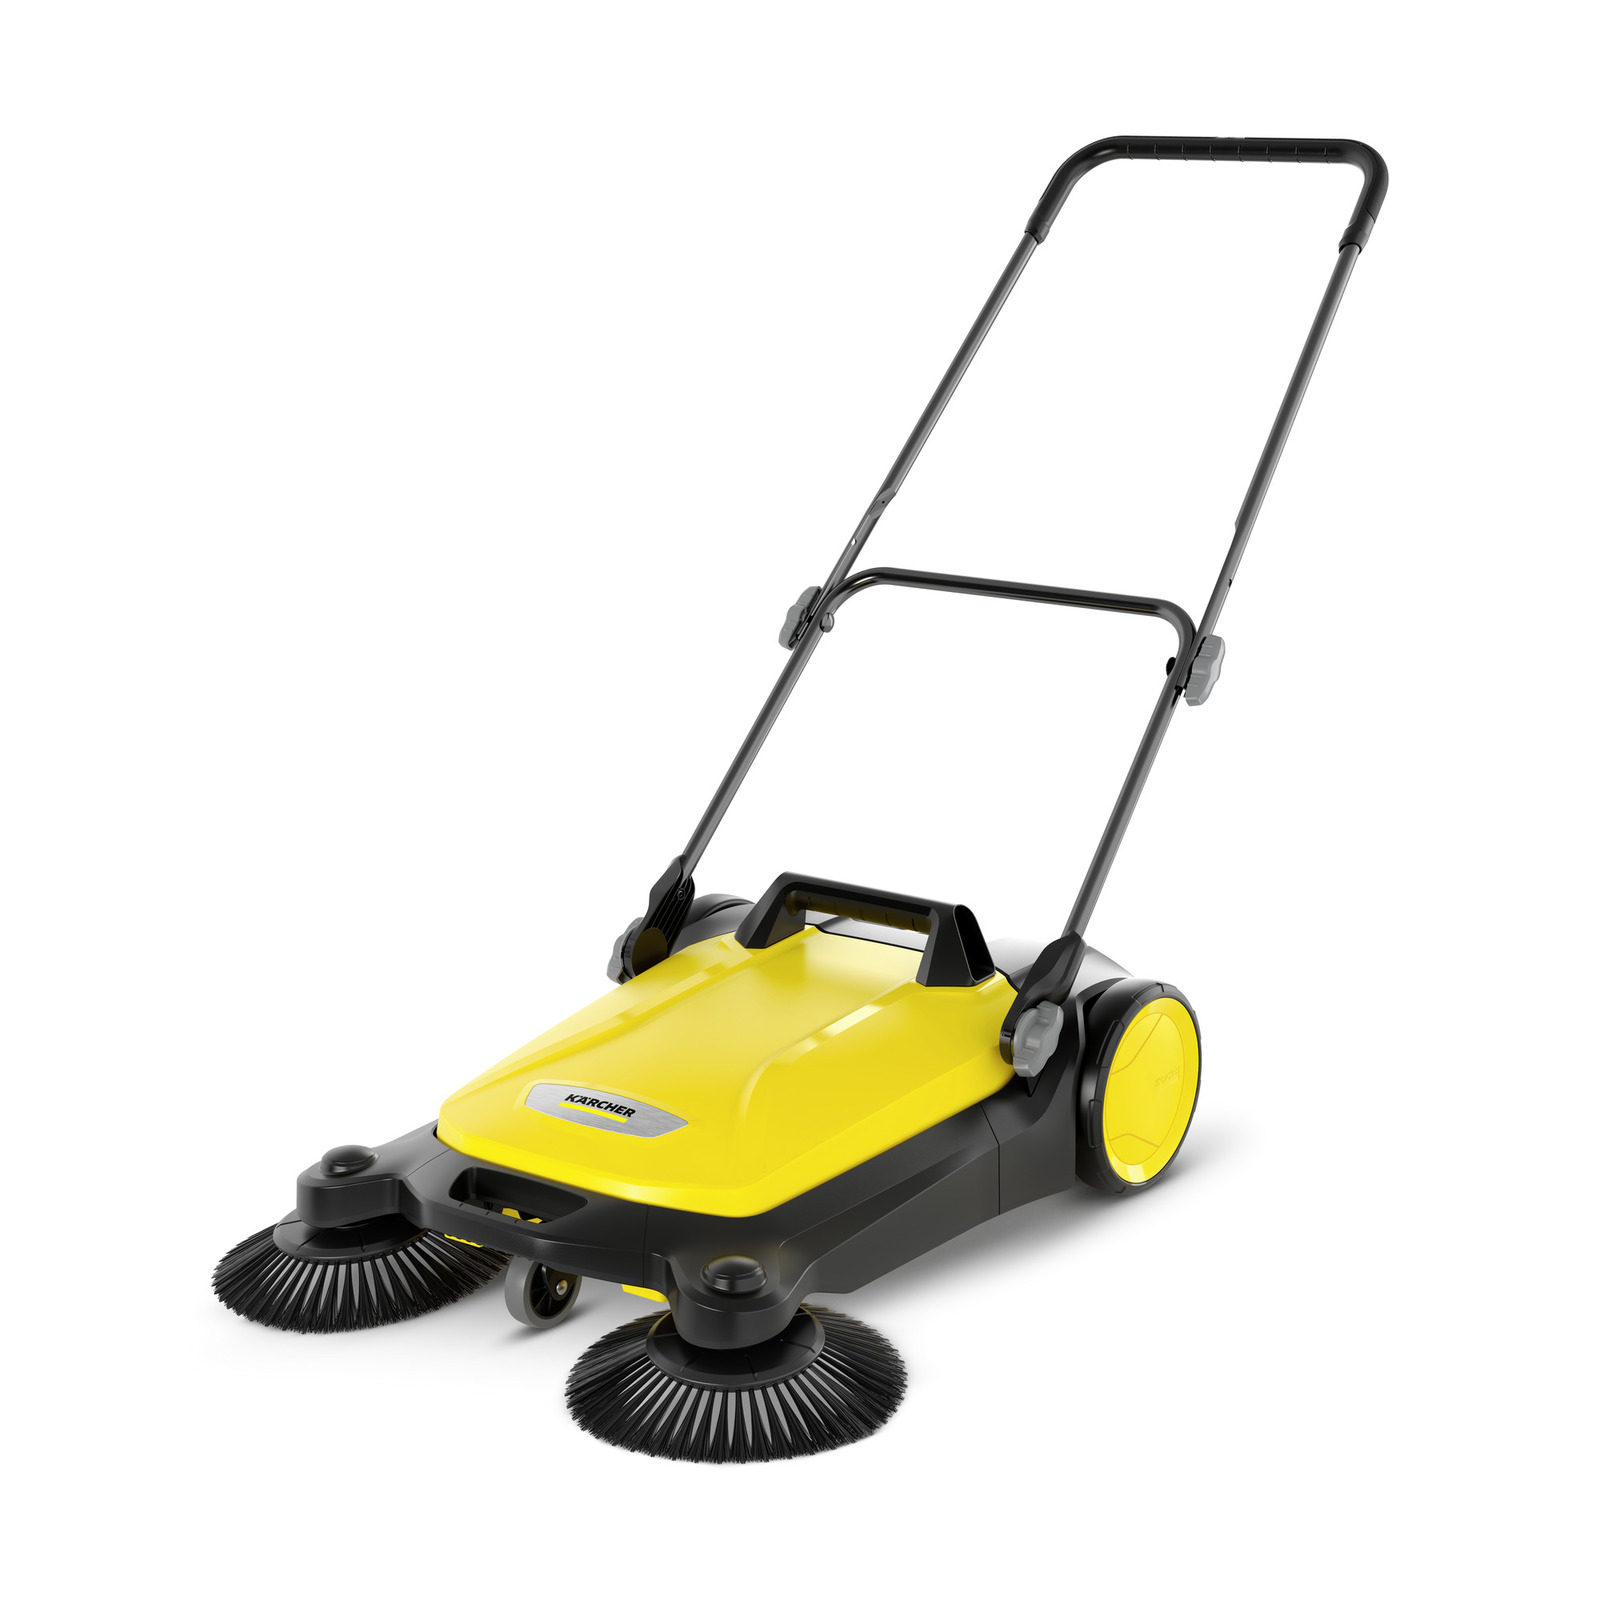 KARCHER 1.766-360.0 - S4 Twin Push Sweeper